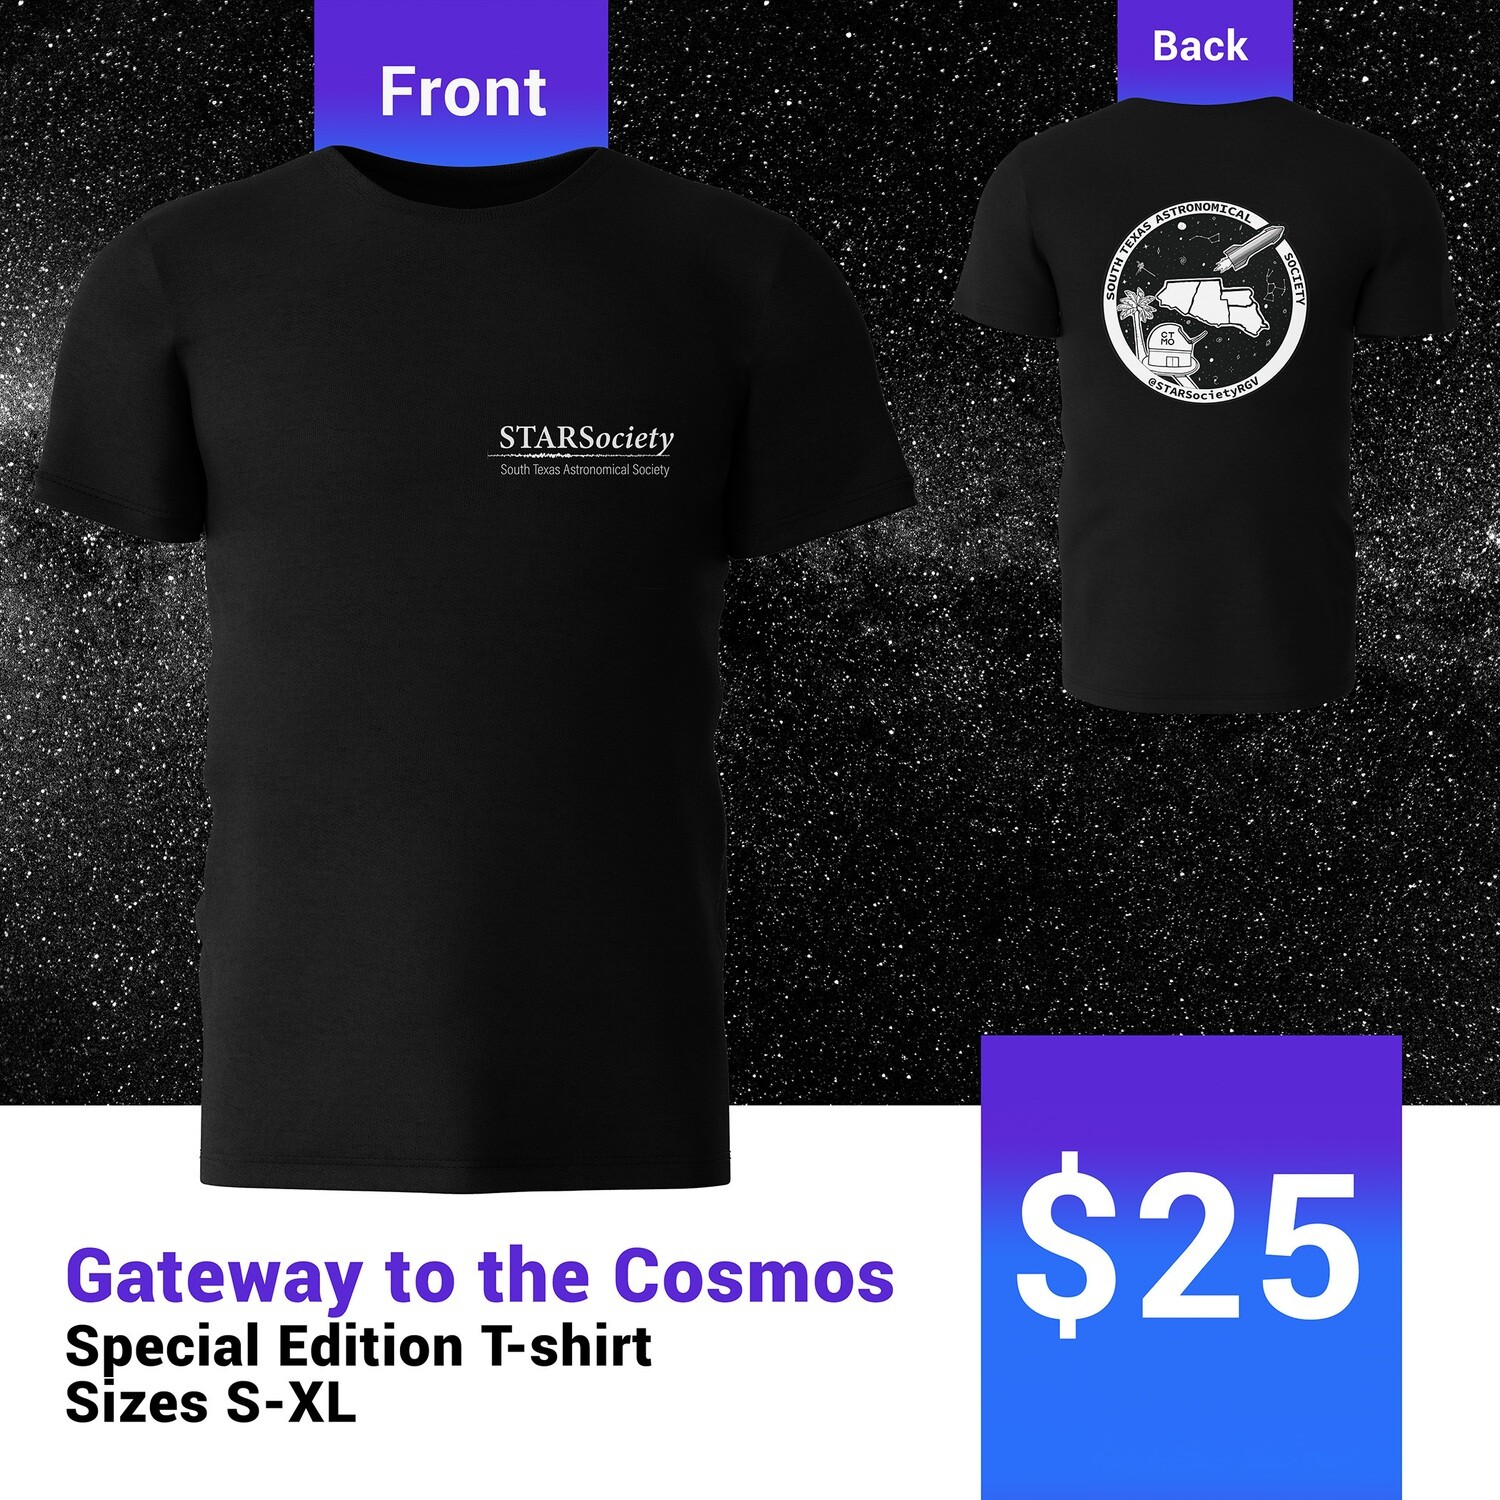 Gateway to the Cosmos Special Edition T-Shirt Size Small